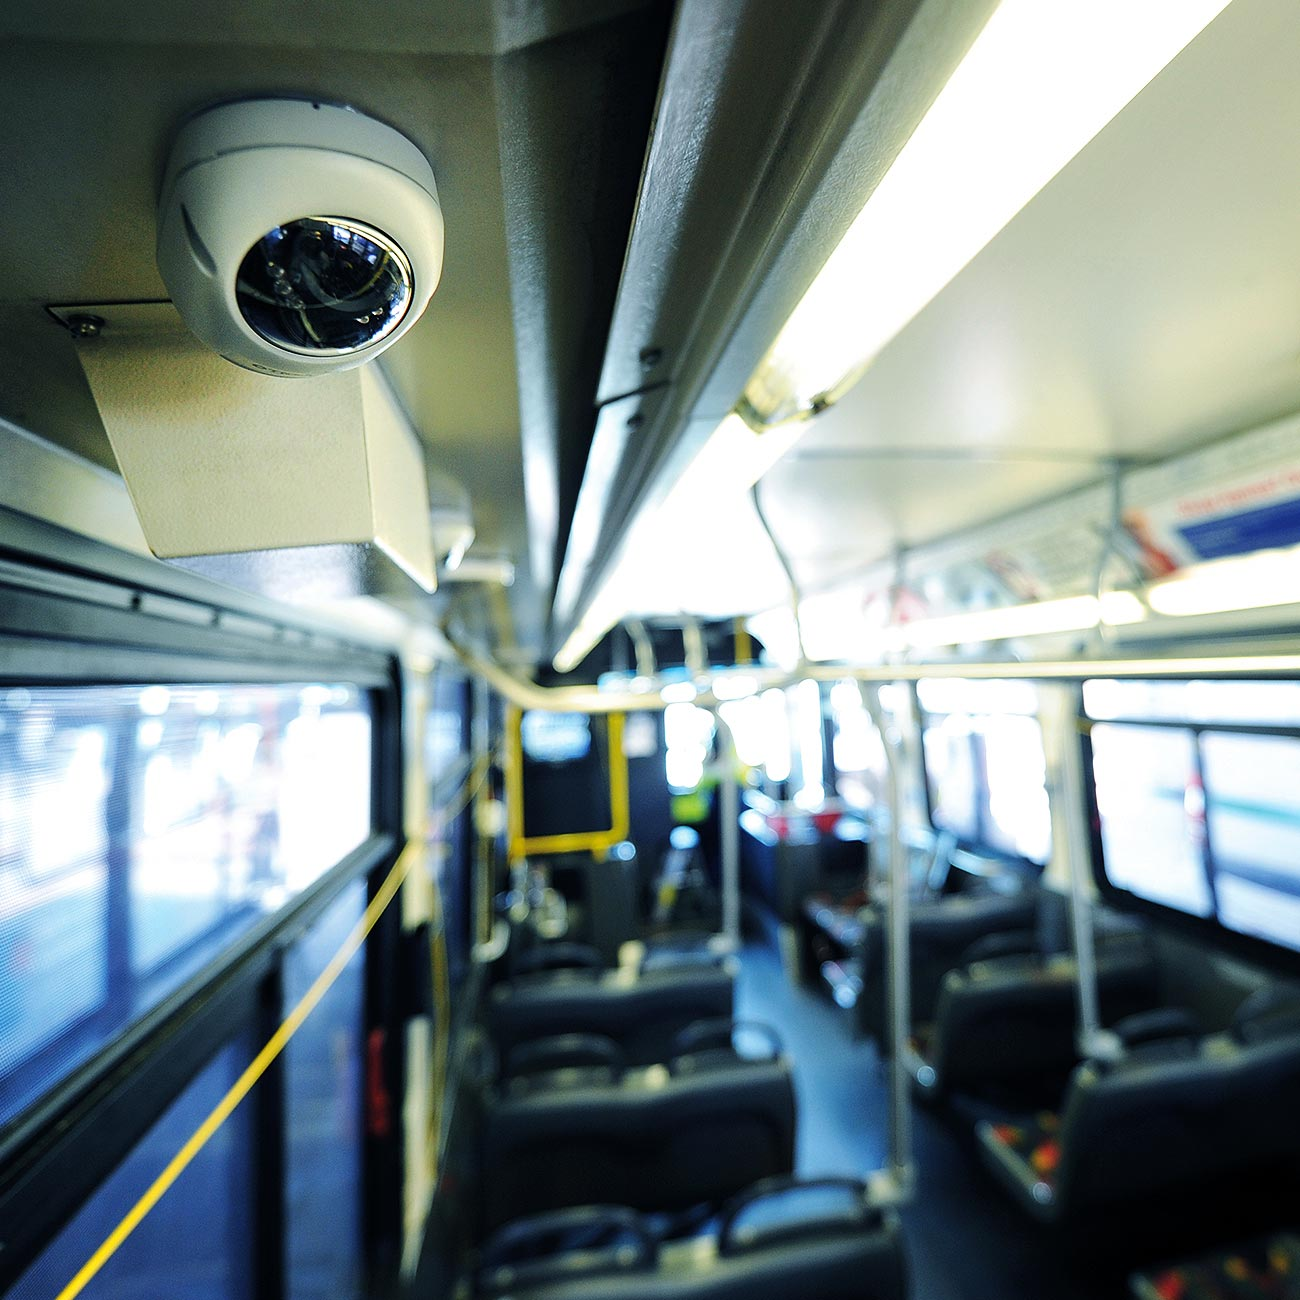 ON-BOARD VIDEO CAMERAS